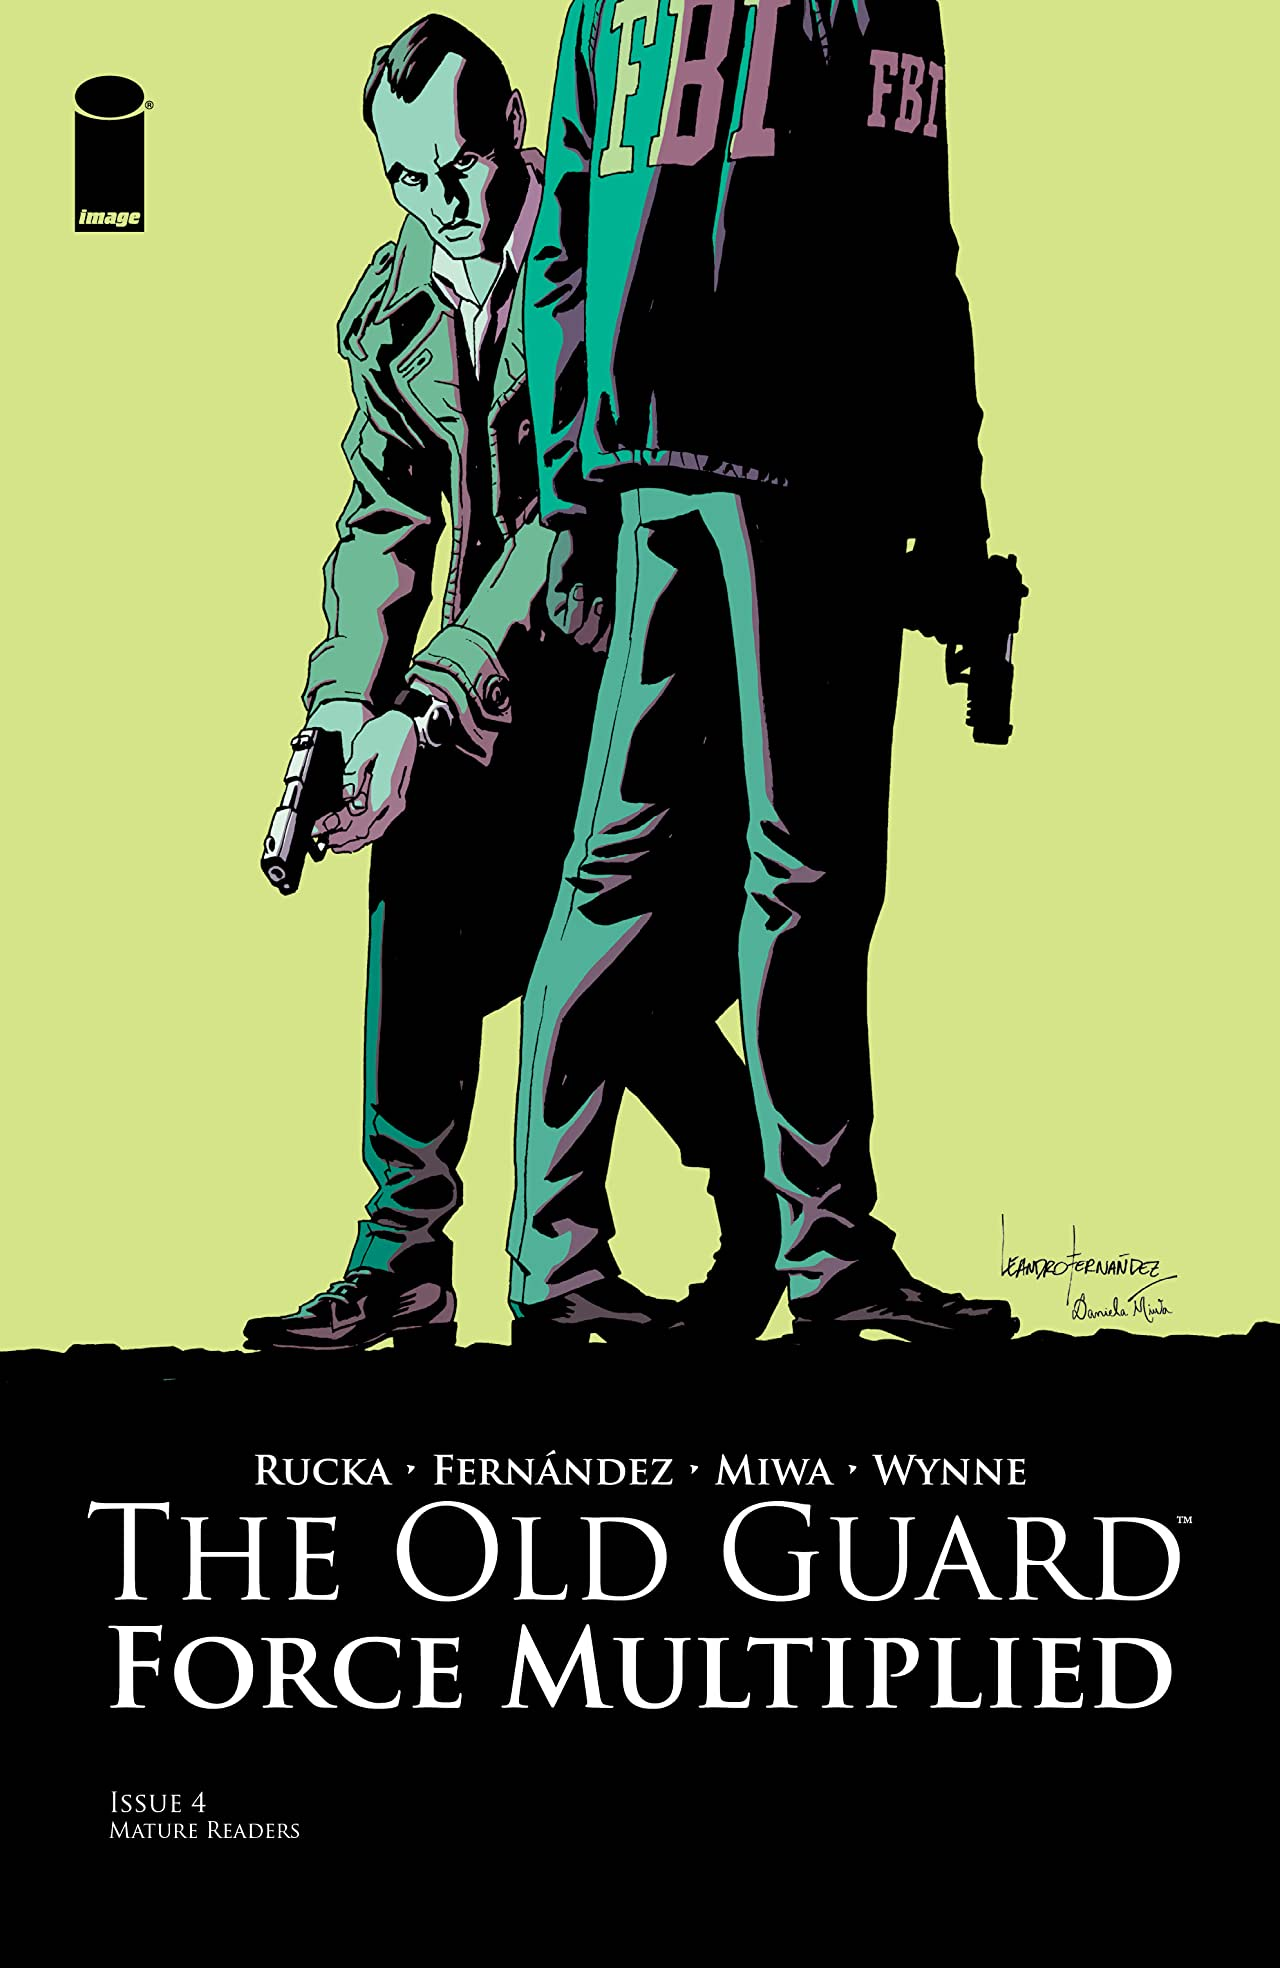 The Old Guard: Force Multiplied No.4